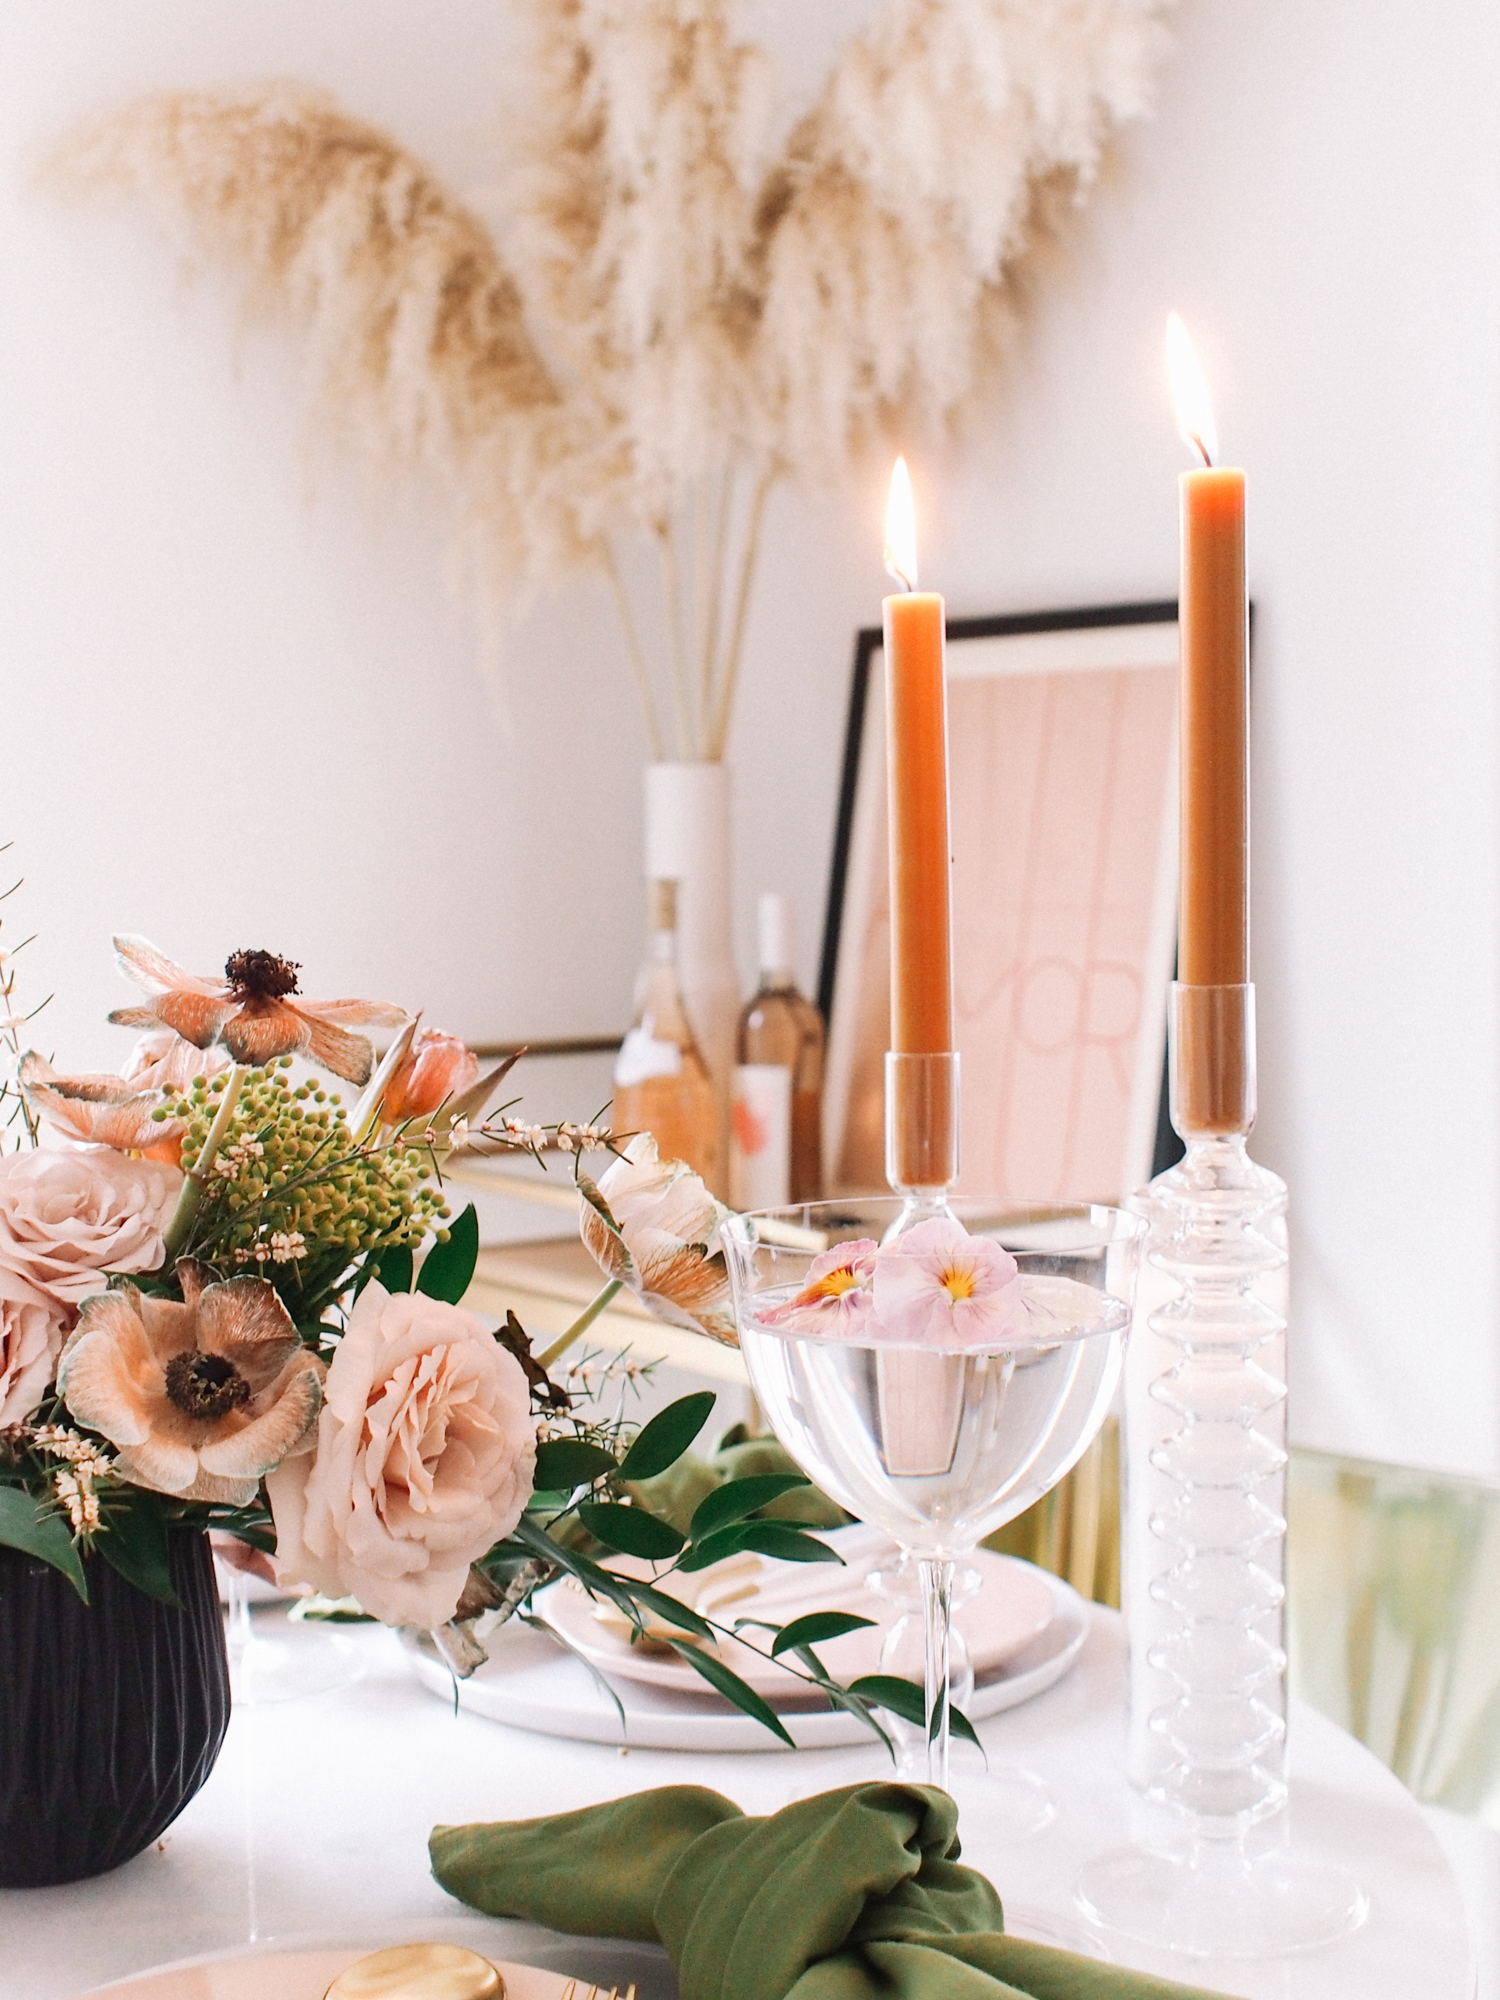 How to set a beautiful spring table | A Fabulous Fete